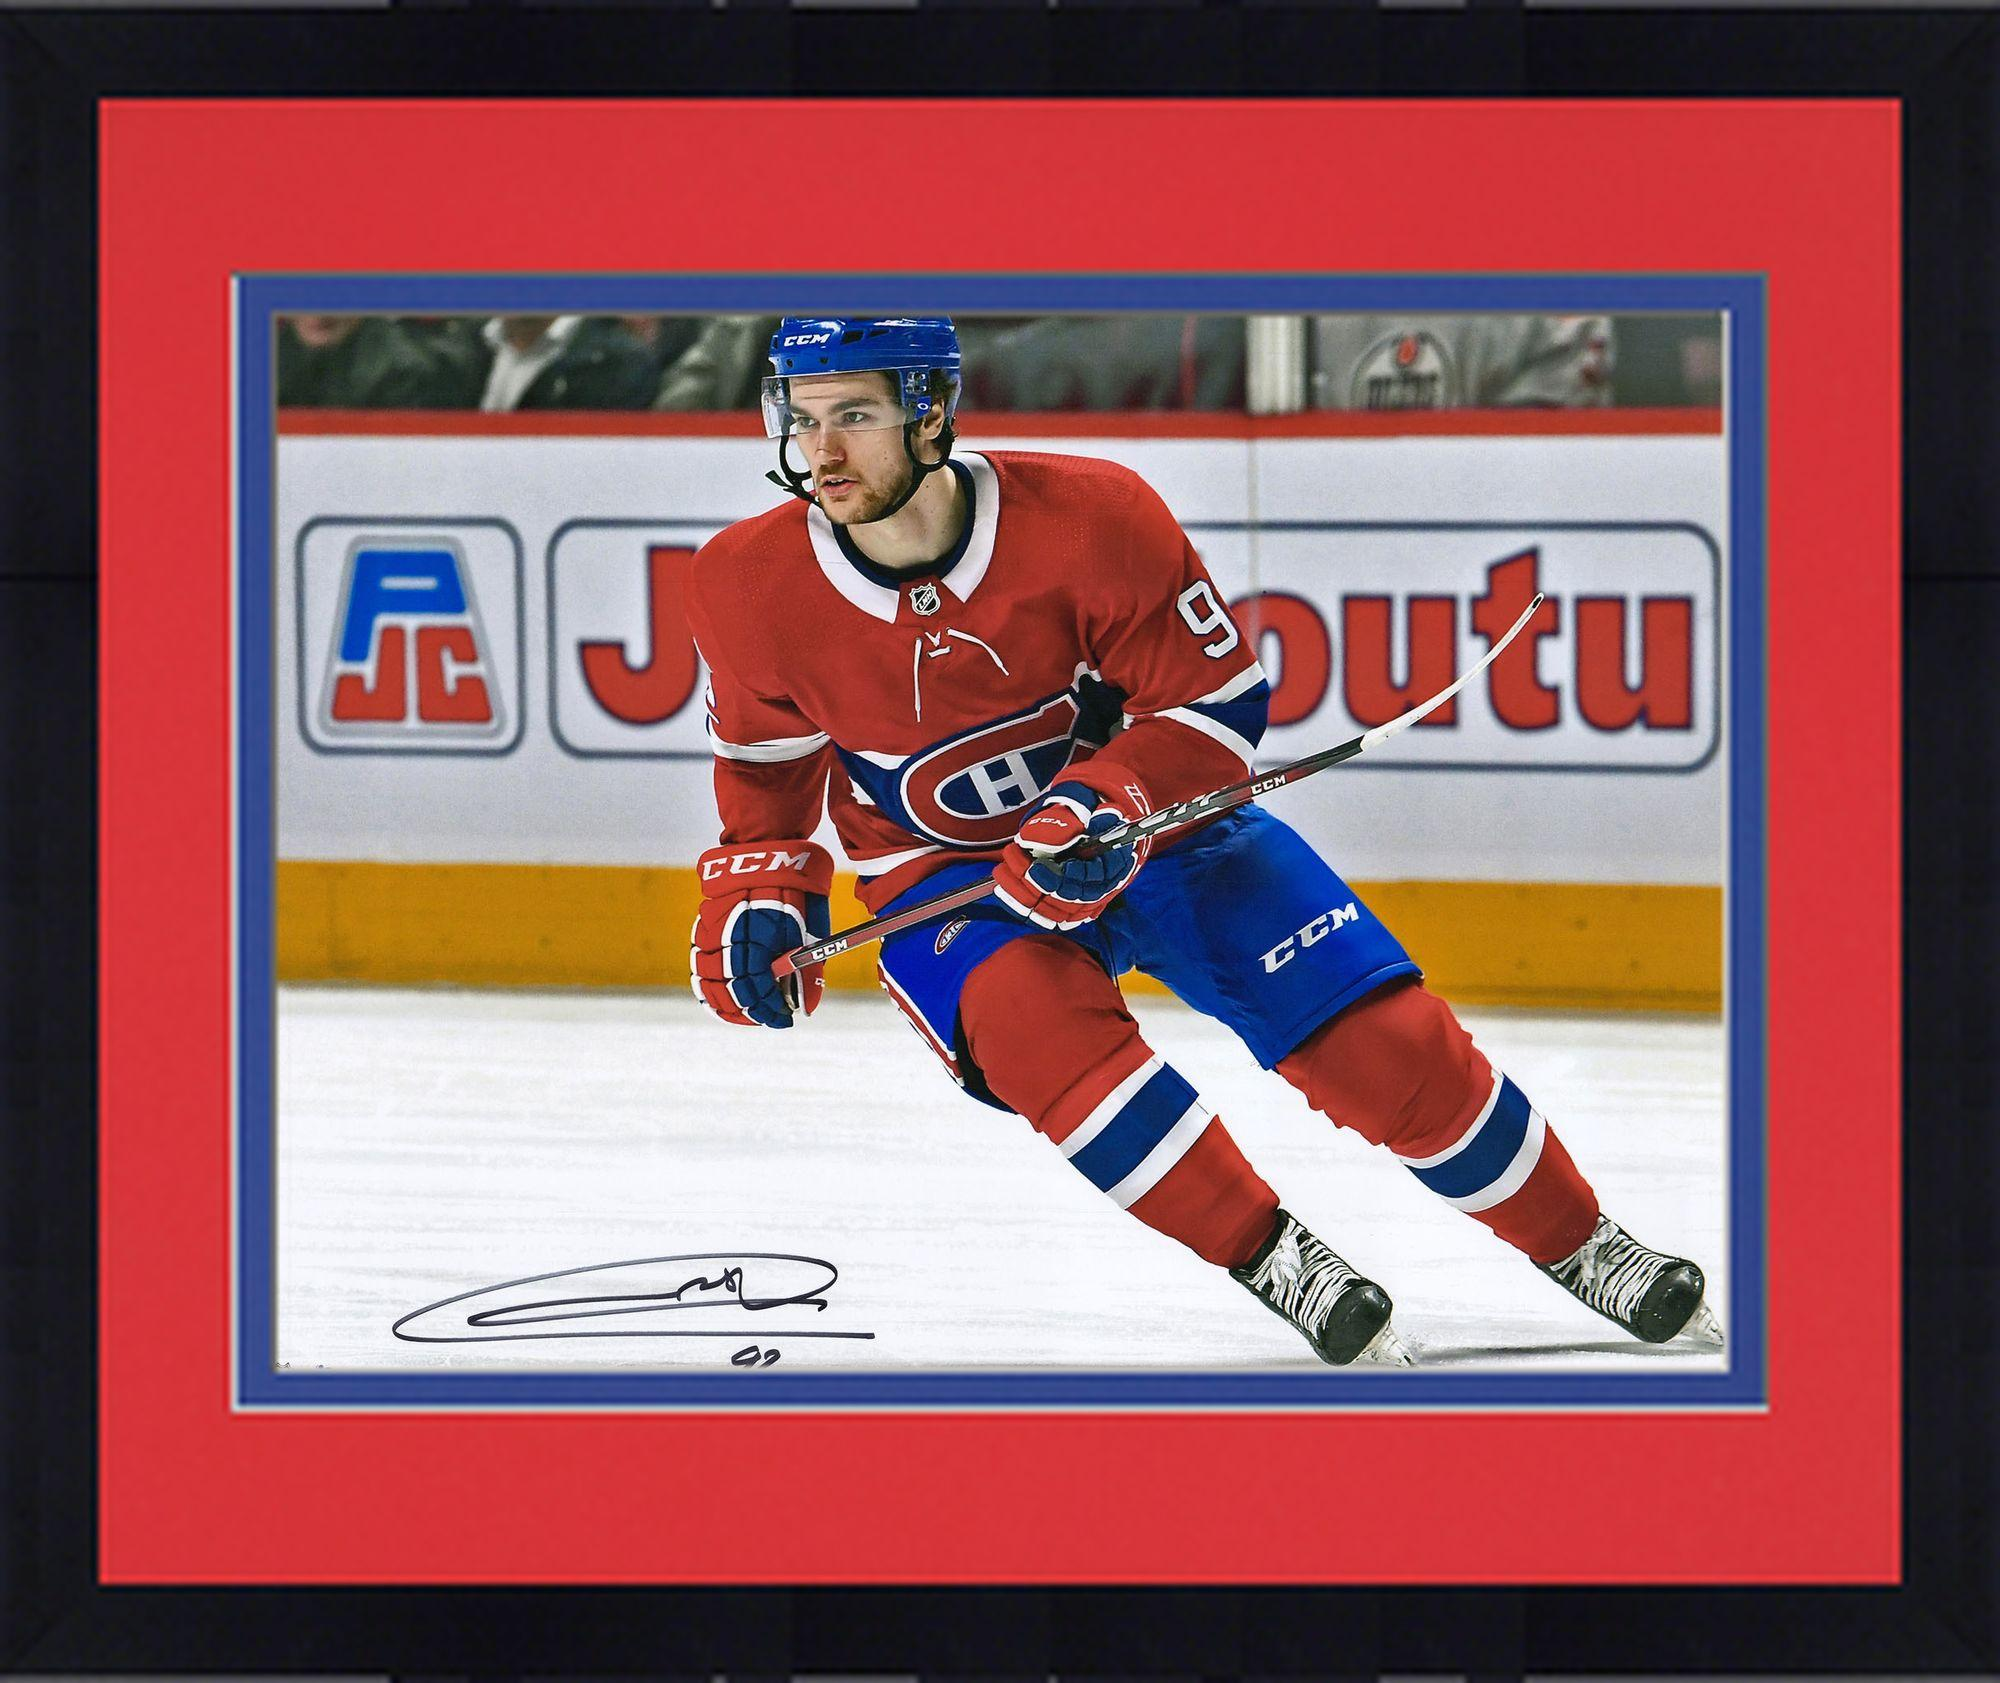 "Framed Jonathan Drouin Montreal Canadiens Autographed 16"" x 20"" Red Jersey Skating Photograph Fanatics... by Fanatics Authentic"